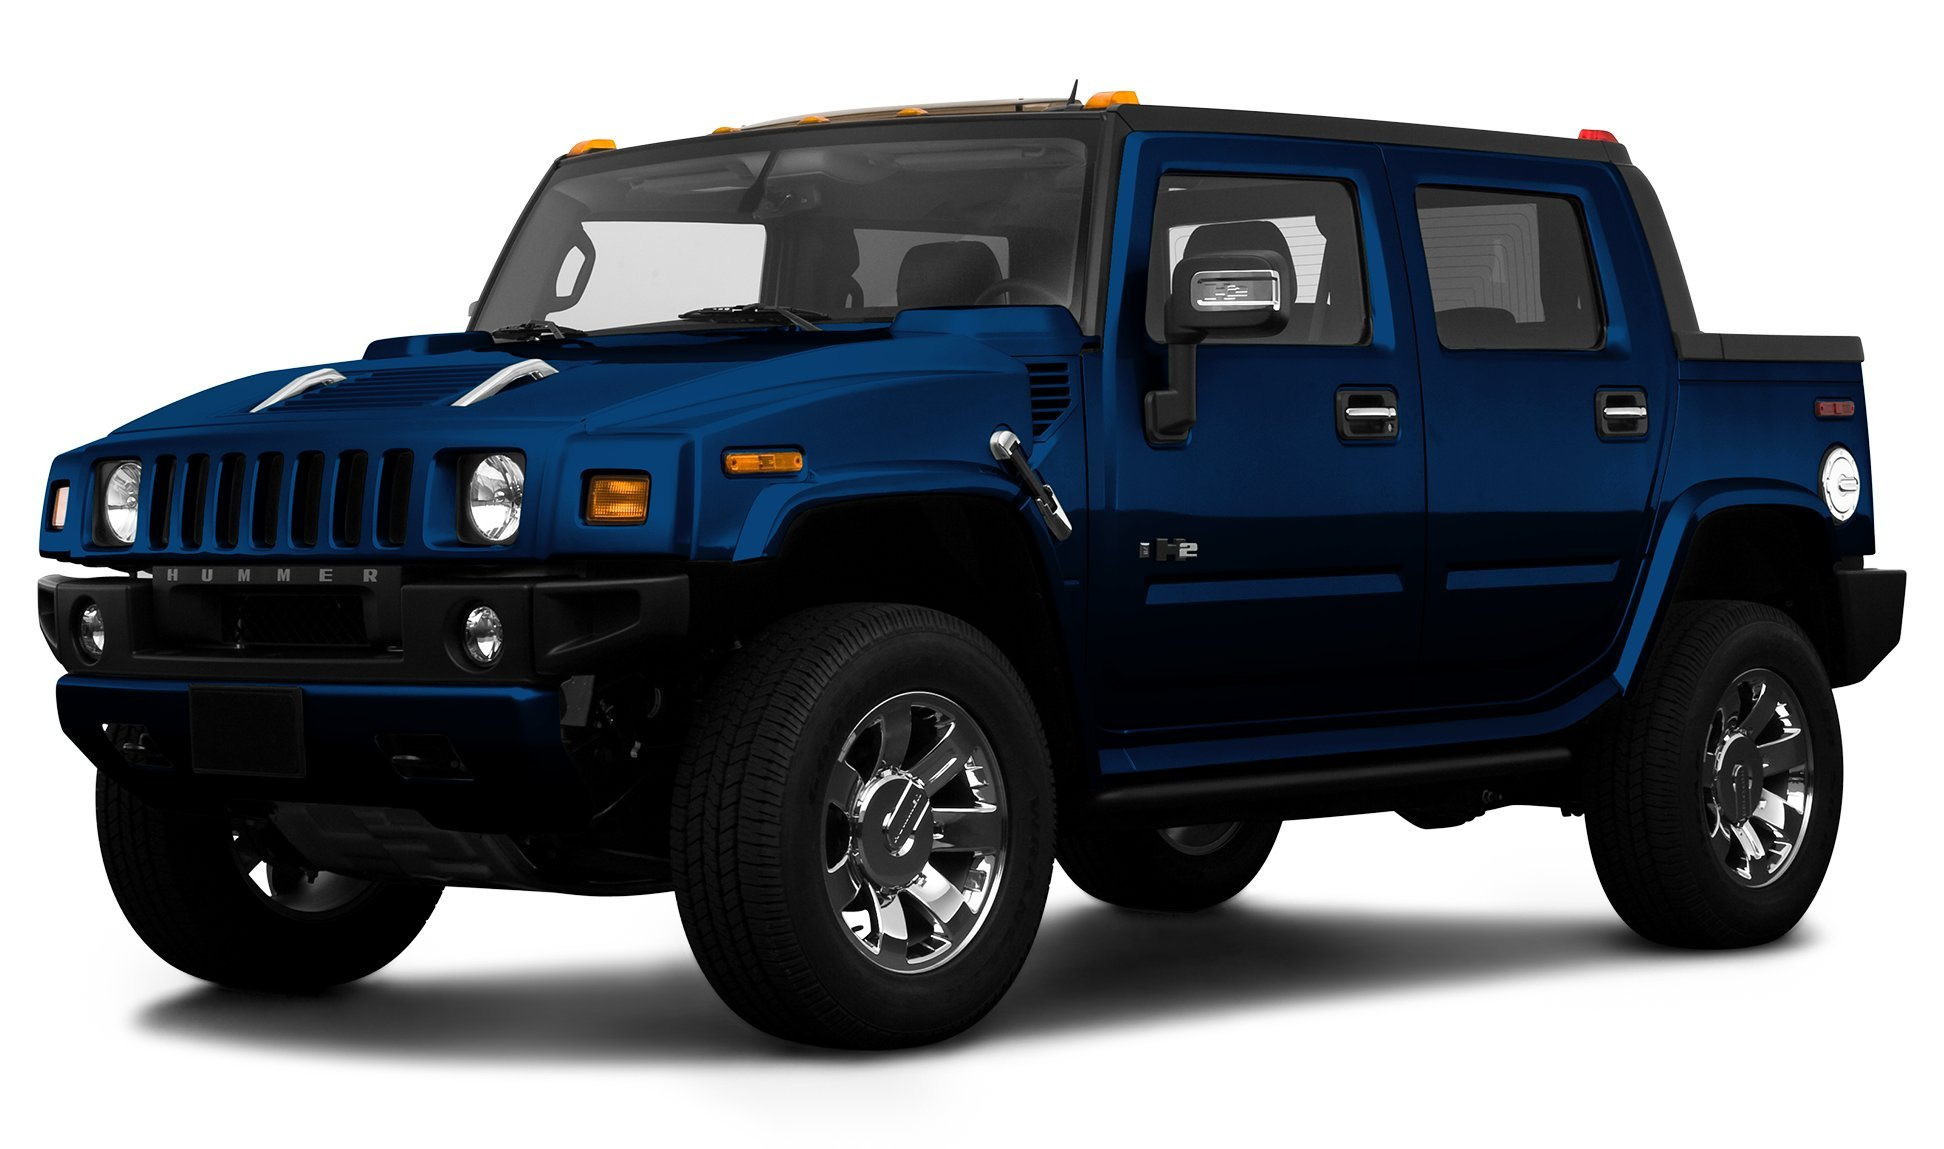 Cool Review About 2009 Hummer H2 Sut with Cool Pictures